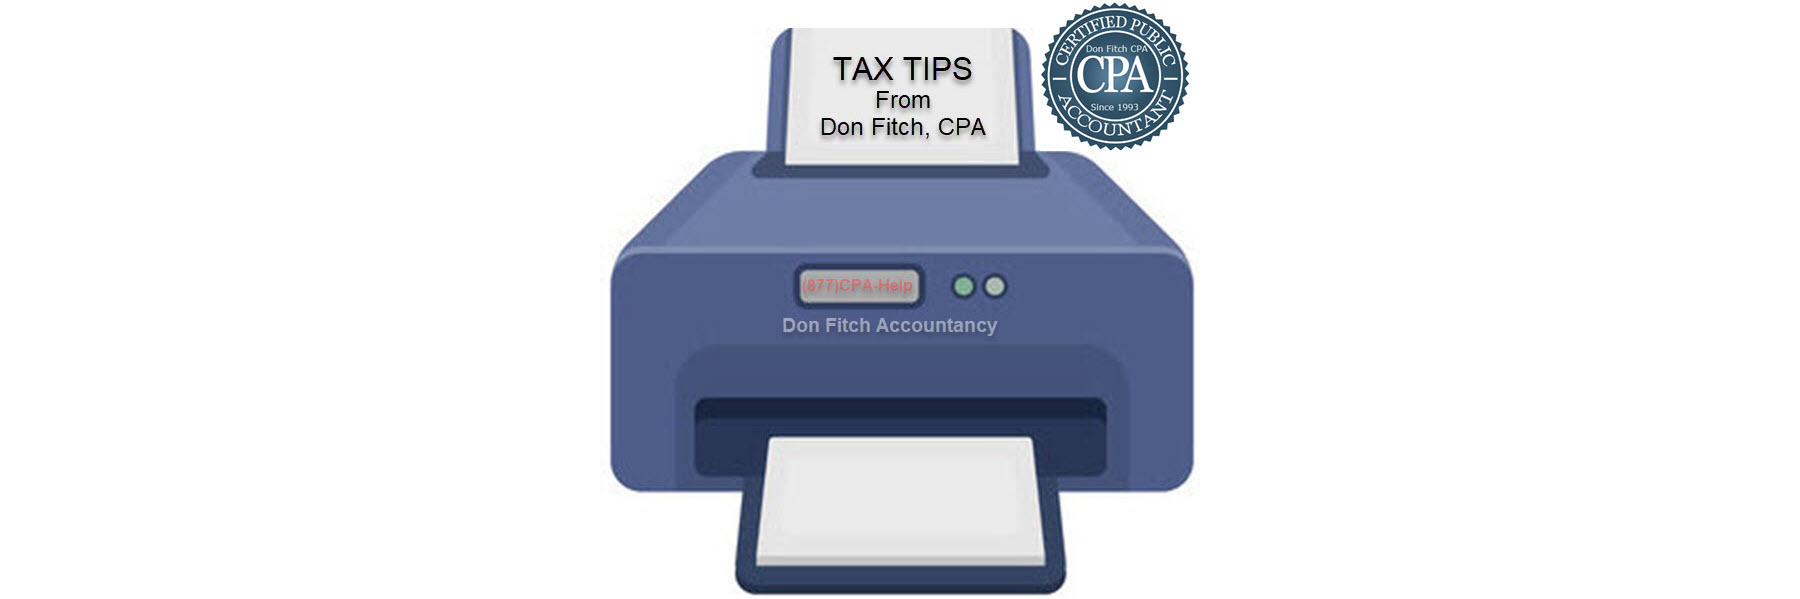 Sale of Home Tax Tip